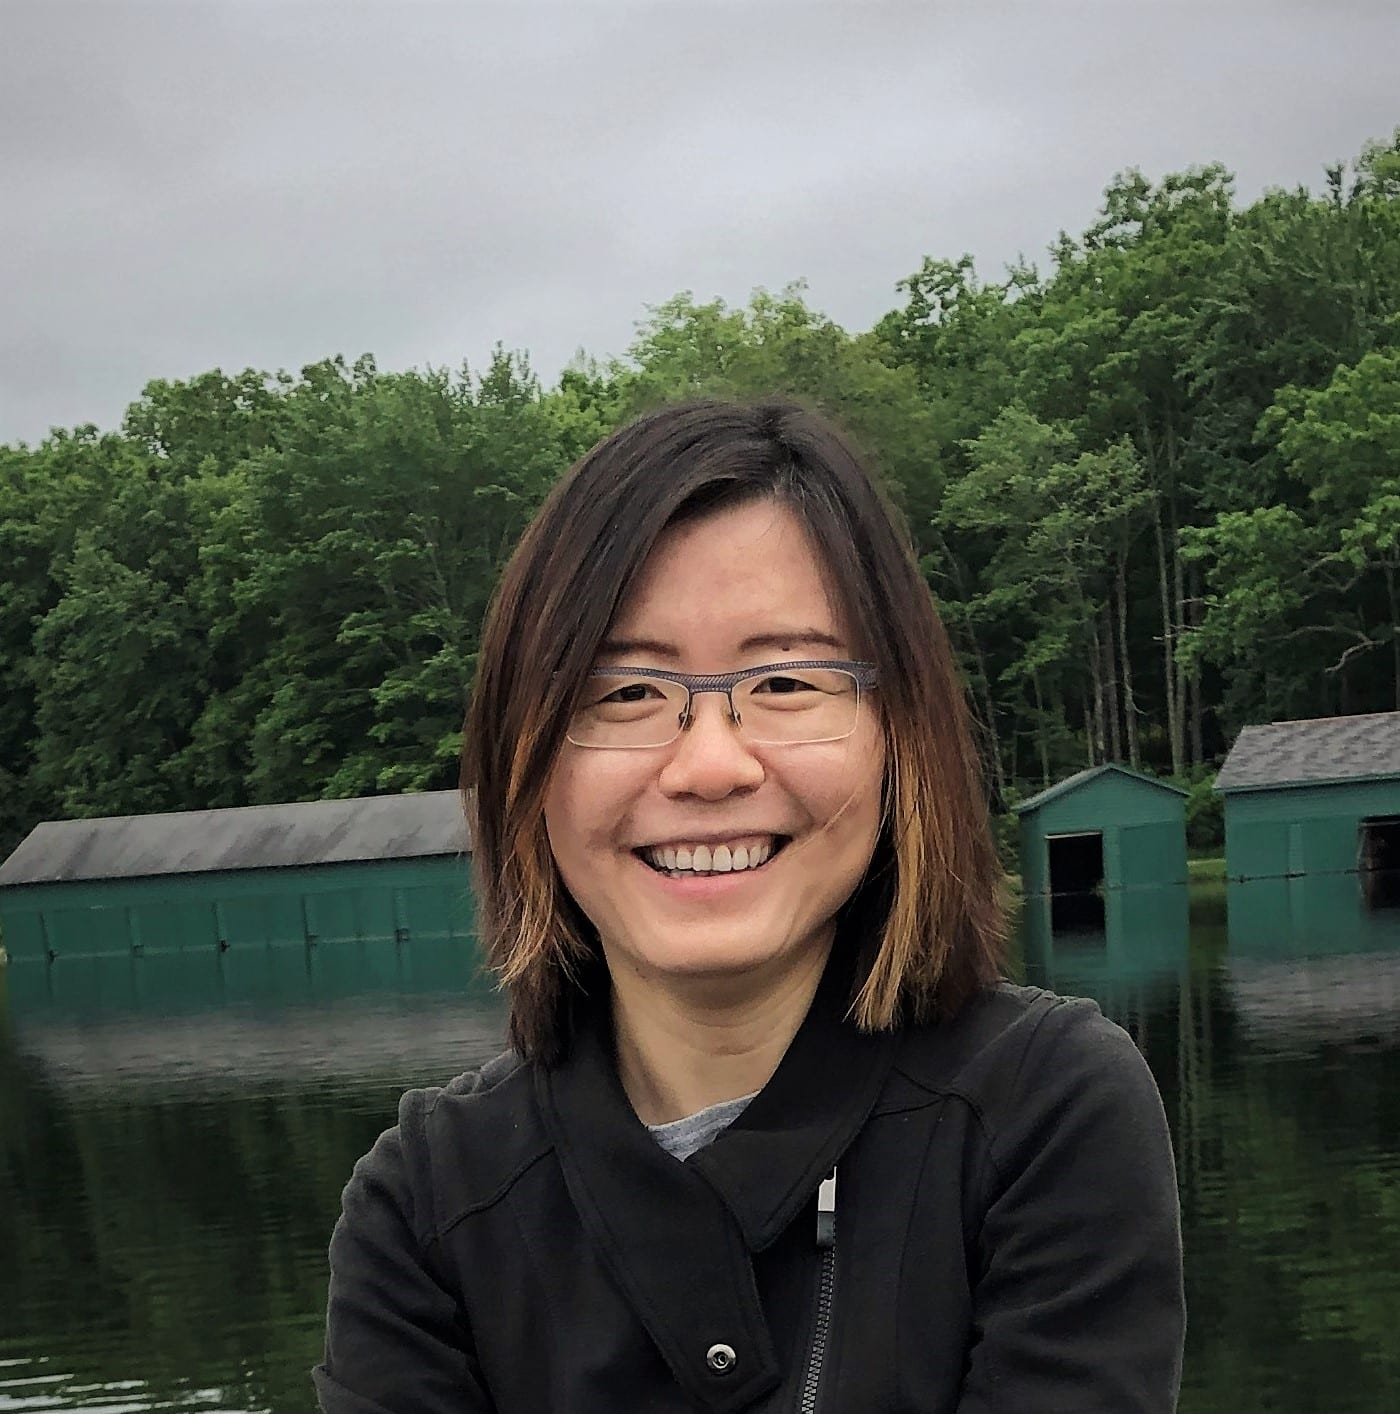 Faculty Focus: Ying Chen